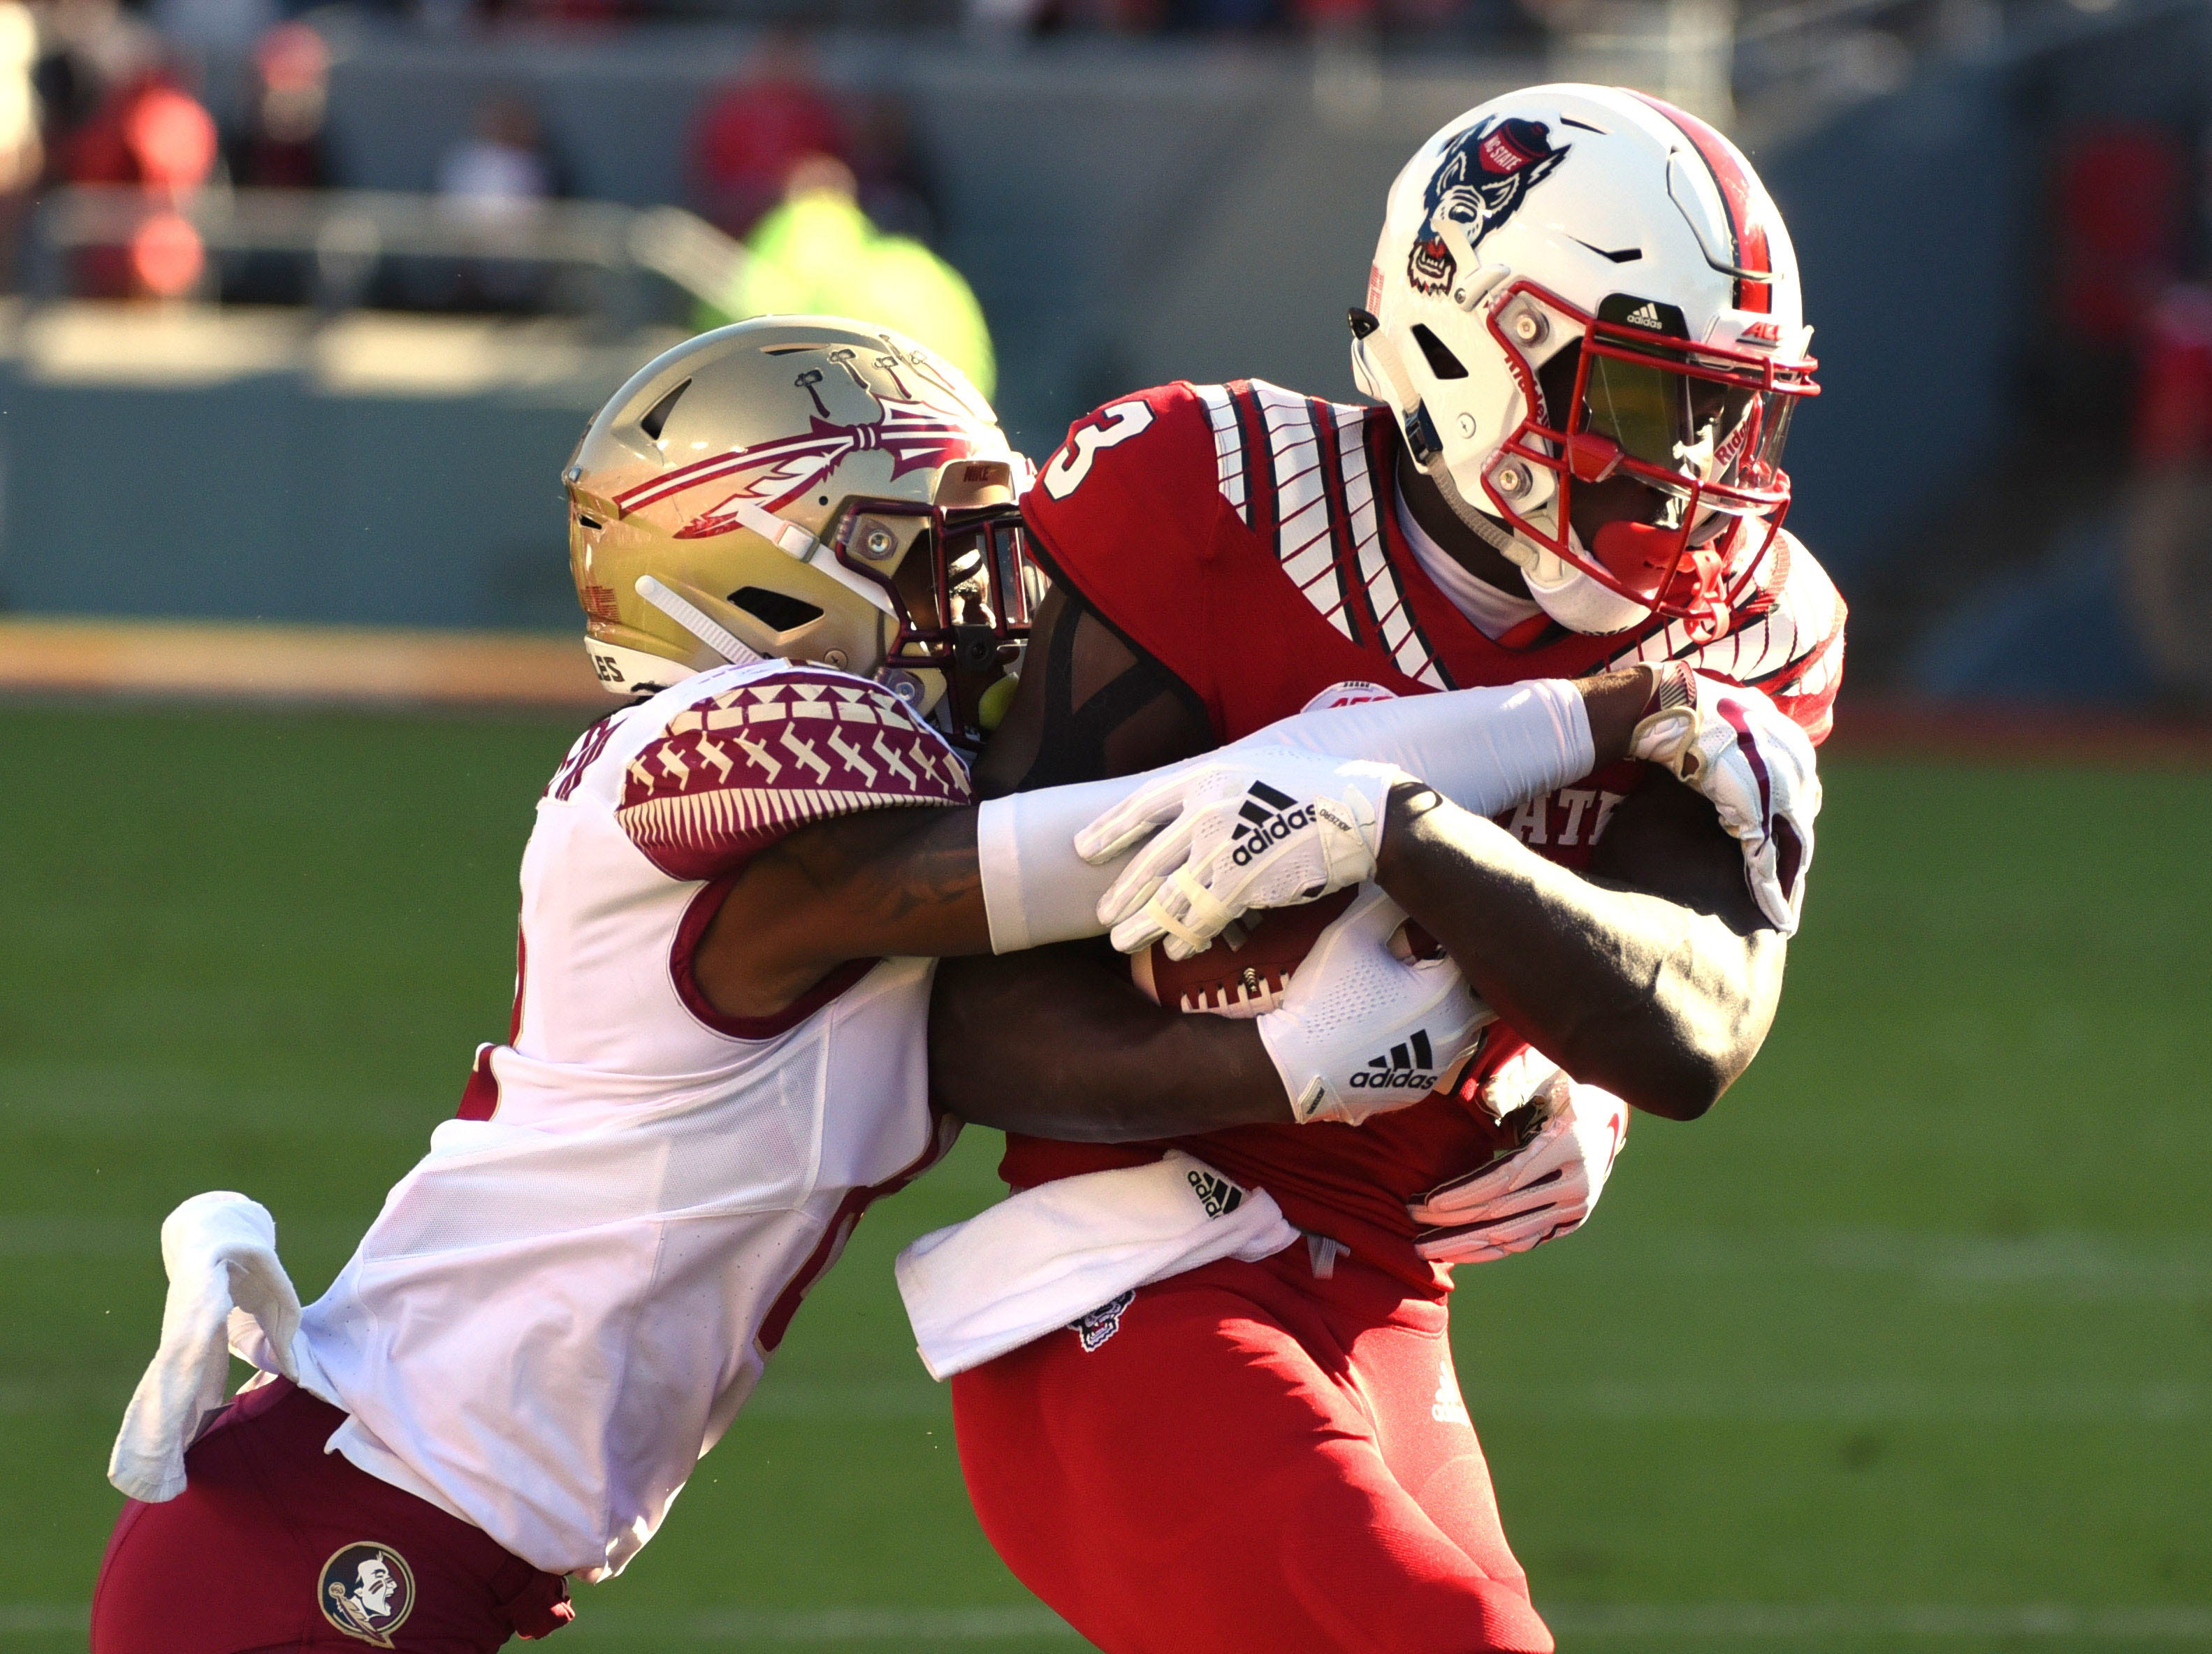 Nov 3, 2018; Raleigh, NC, USA; North Carolina State Wolfpack wide receiver Kelvin Harmon (3) is tackled after a catch by Florida State Seminoles defensive back Stanford Samuels III (8) during the first half at Carter-Finley Stadium. Mandatory Credit: Rob Kinnan-USA TODAY Sports